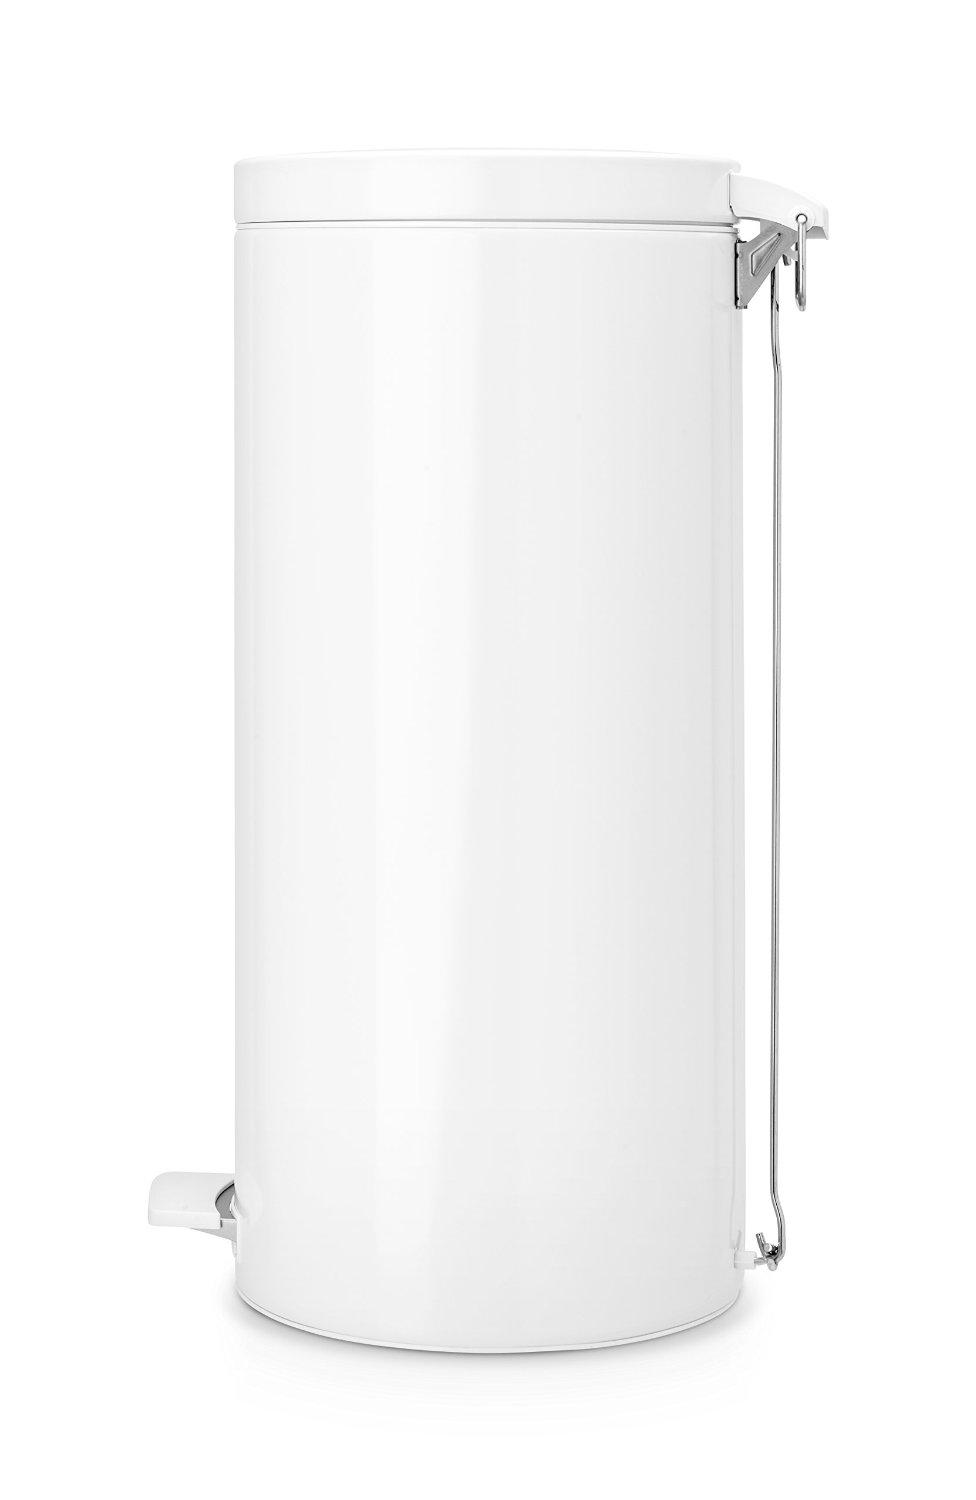 brabantia step trash can with plastic inner bucket 7 gal white home kitchen. Black Bedroom Furniture Sets. Home Design Ideas